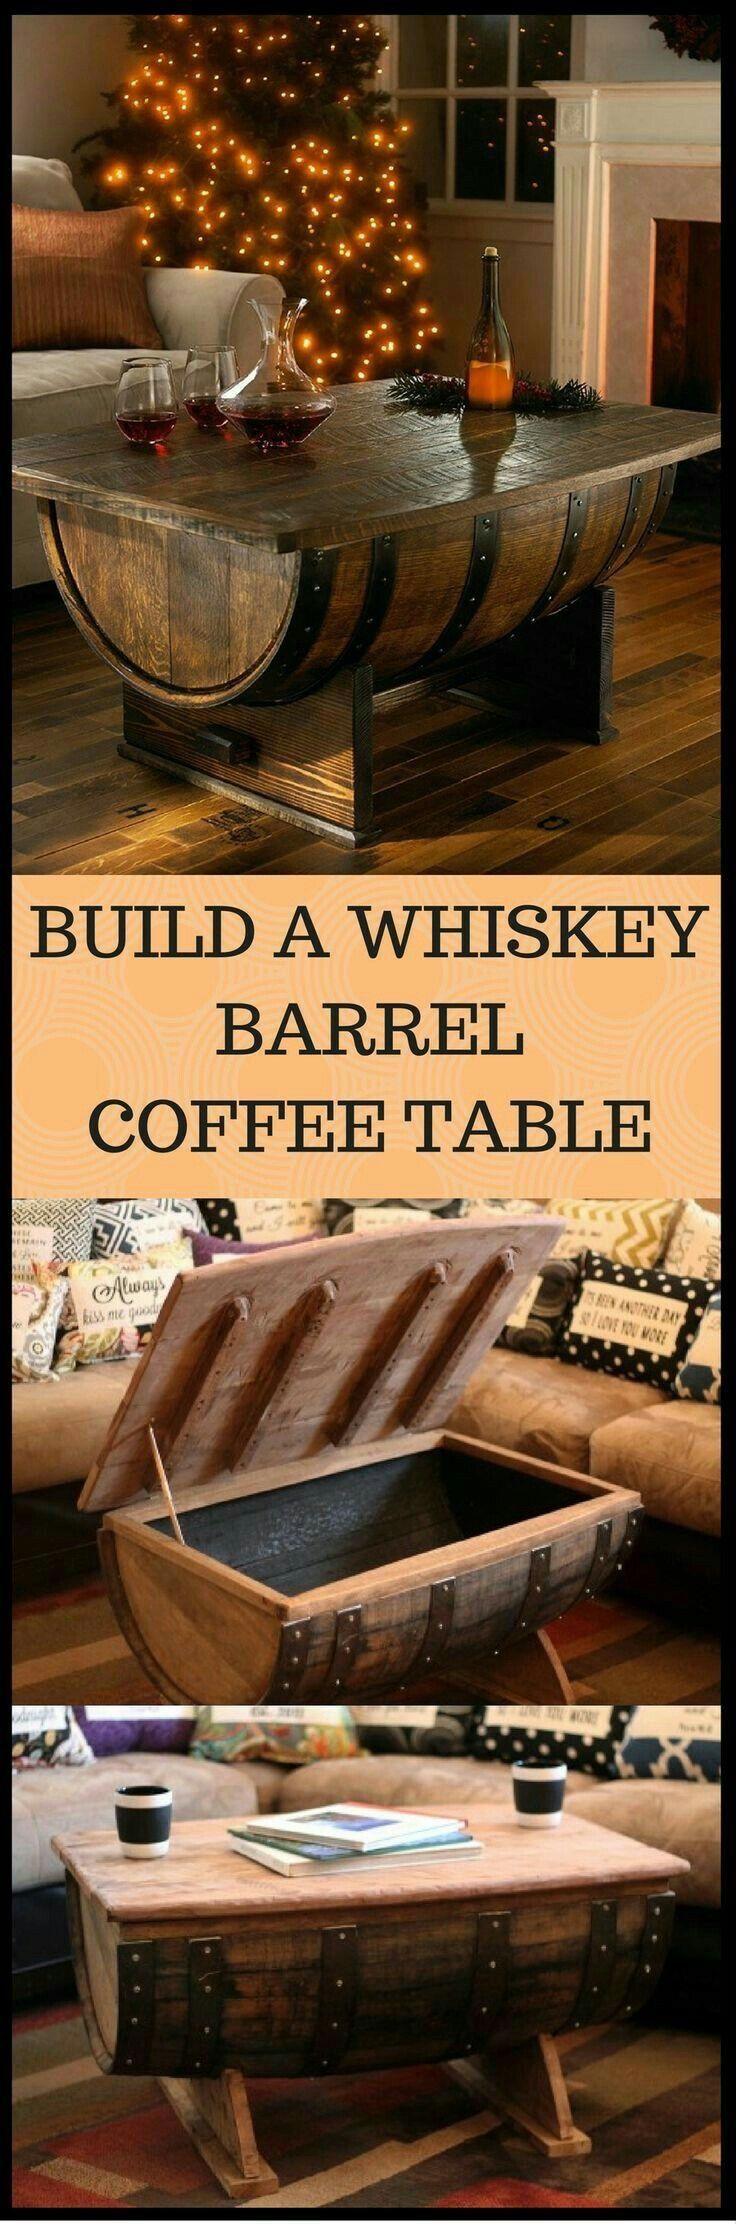 Pin By Austin Easley On Clever Space Saving Ideas Barrel Coffee Table Home Diy Diy Furniture